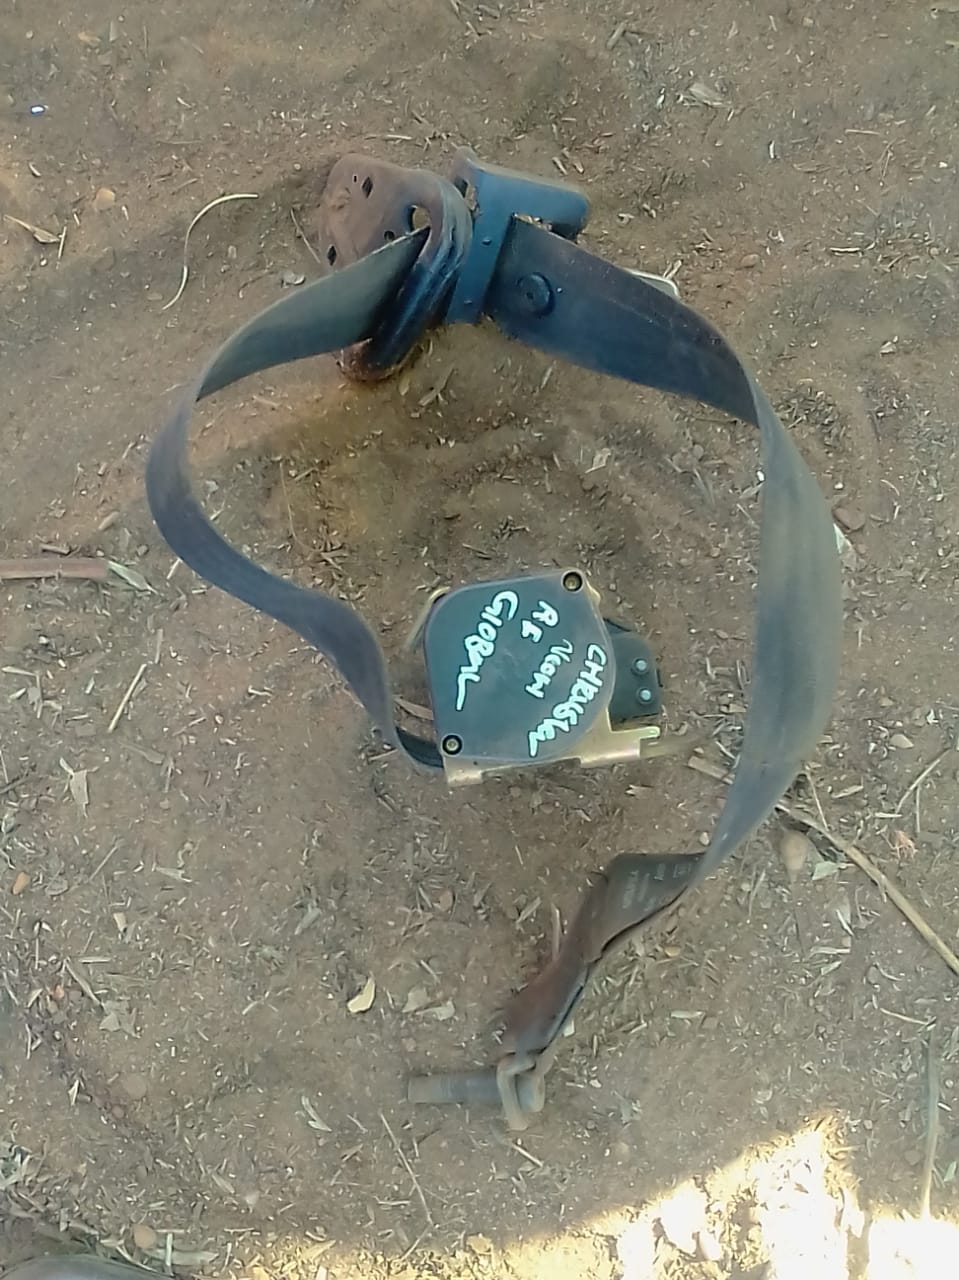 chrysler neon right front safety belt - USED(GPO)